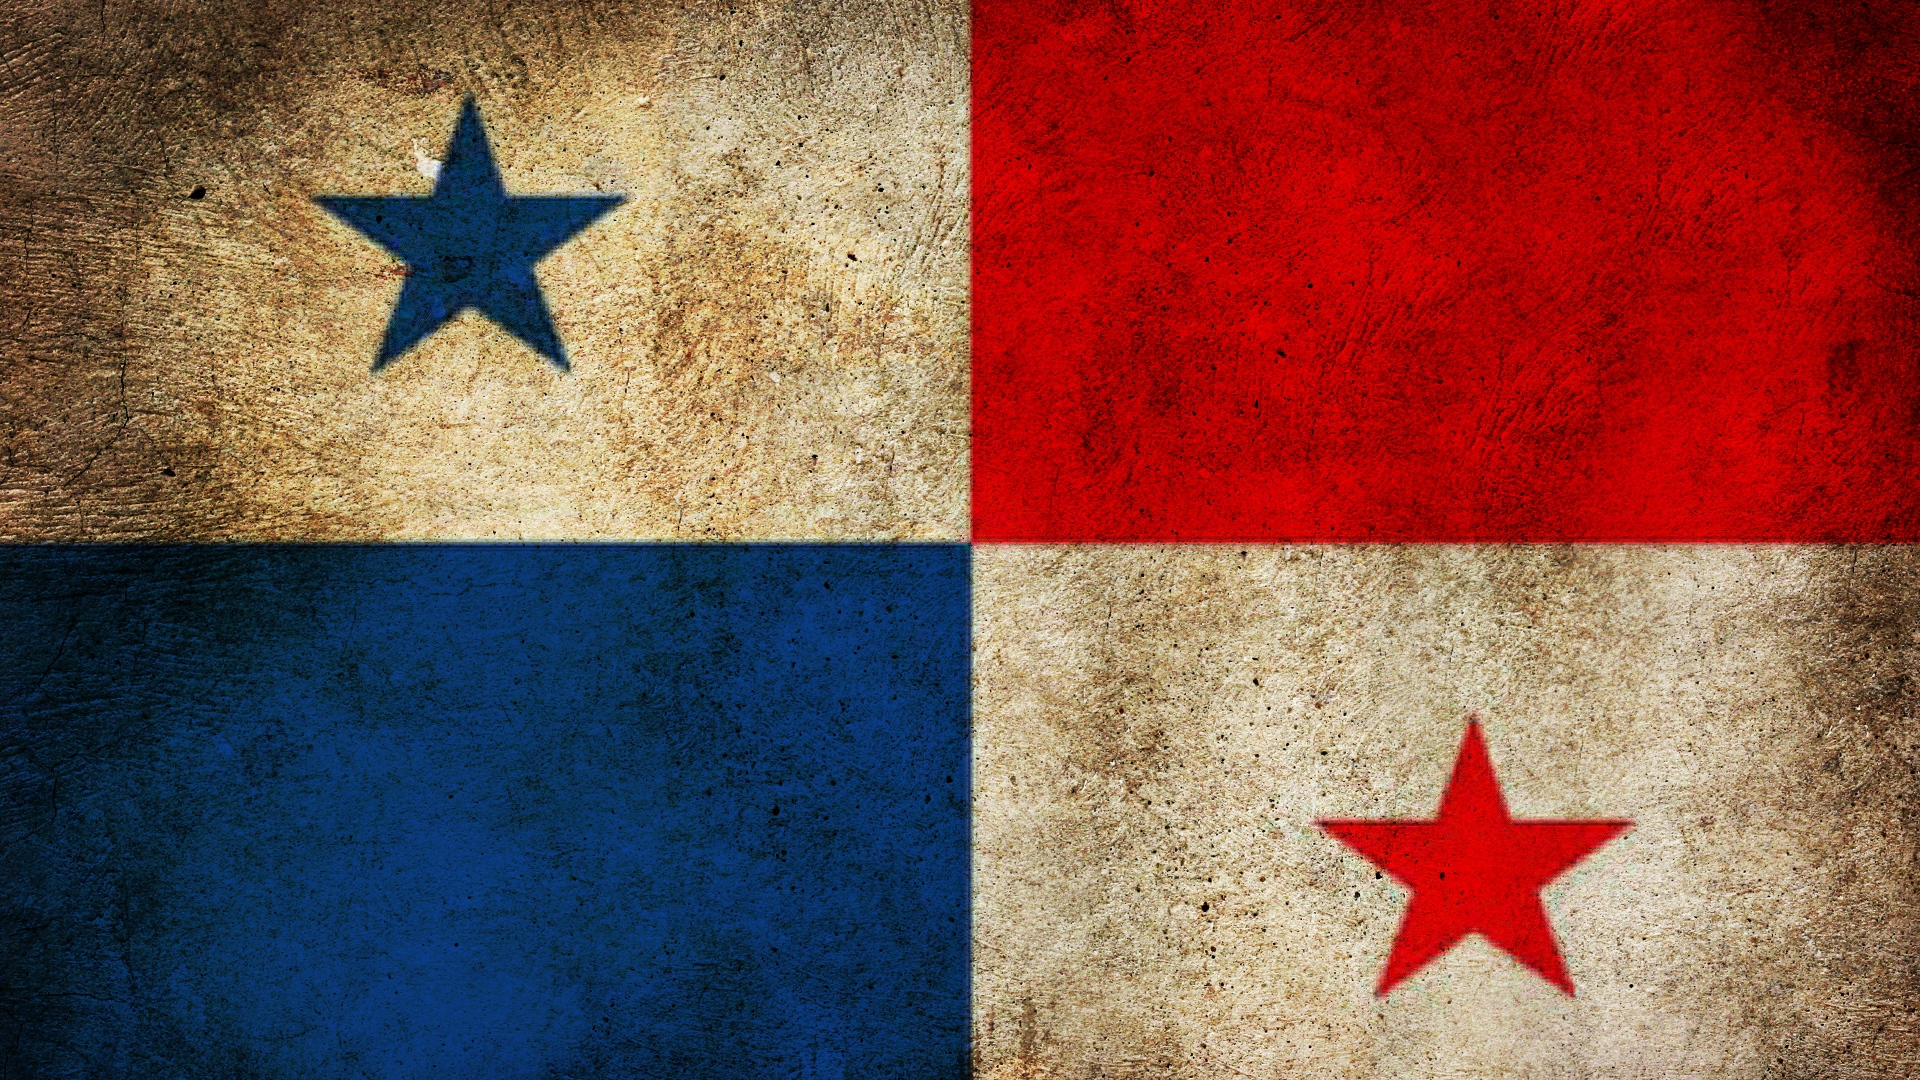 Download wallpaper 1920x1080 panama flag mud texture full hd 1920x1080